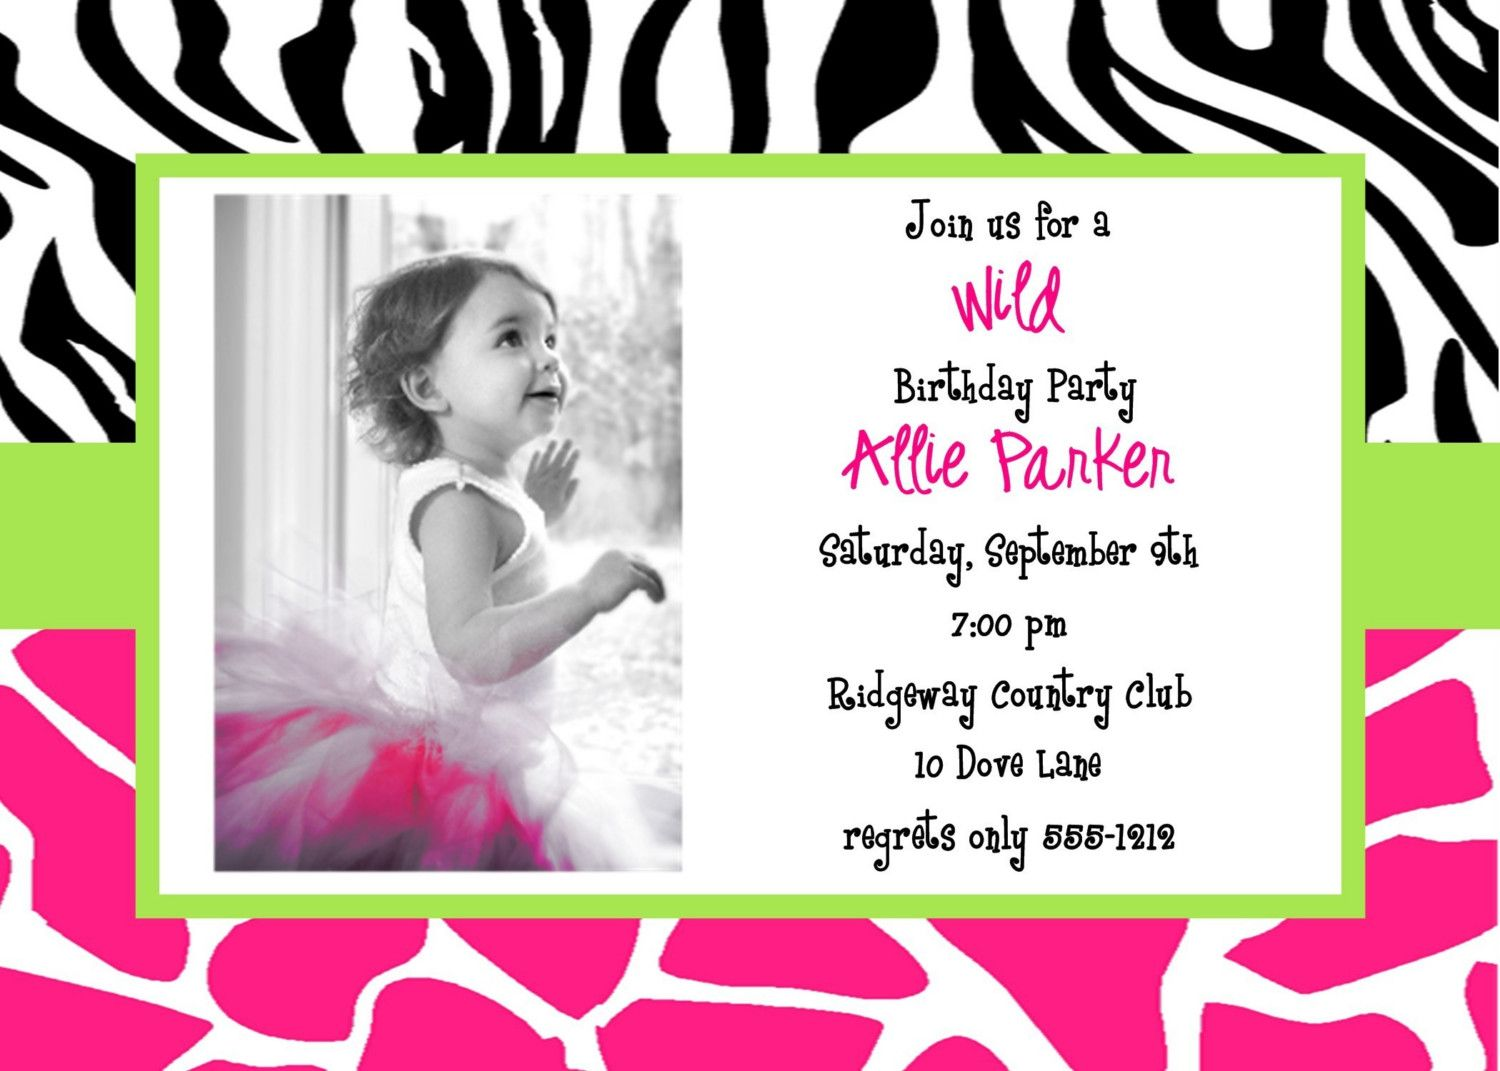 How To Choose The Best One Free Printable Birthday Invitation - Party invitation template: free 40th birthday party invitation templates